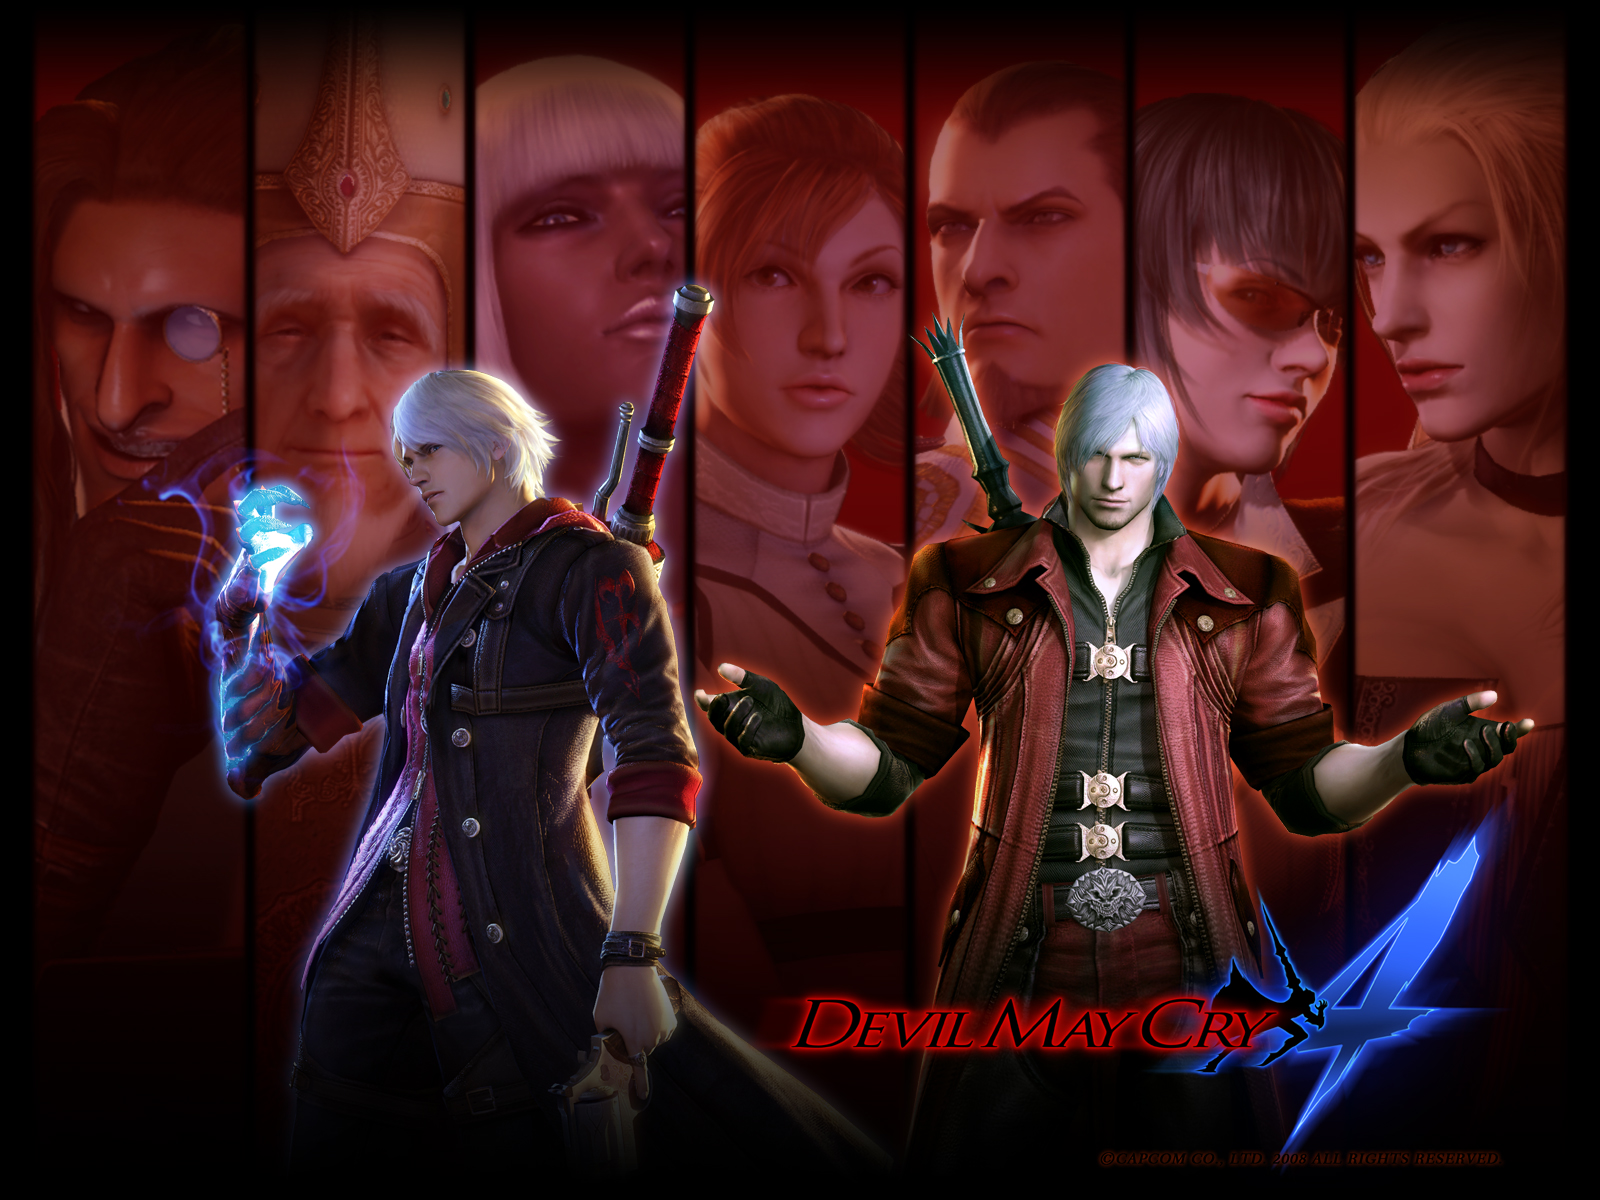 http://2.bp.blogspot.com/_kF3J2soAXgo/TTawzJ7jLjI/AAAAAAAABqg/ov80C_ROZCw/s1600/954-devil-may-cry-4-characters-wallpaper-1600x1200-customity-newanimationworld.jpg